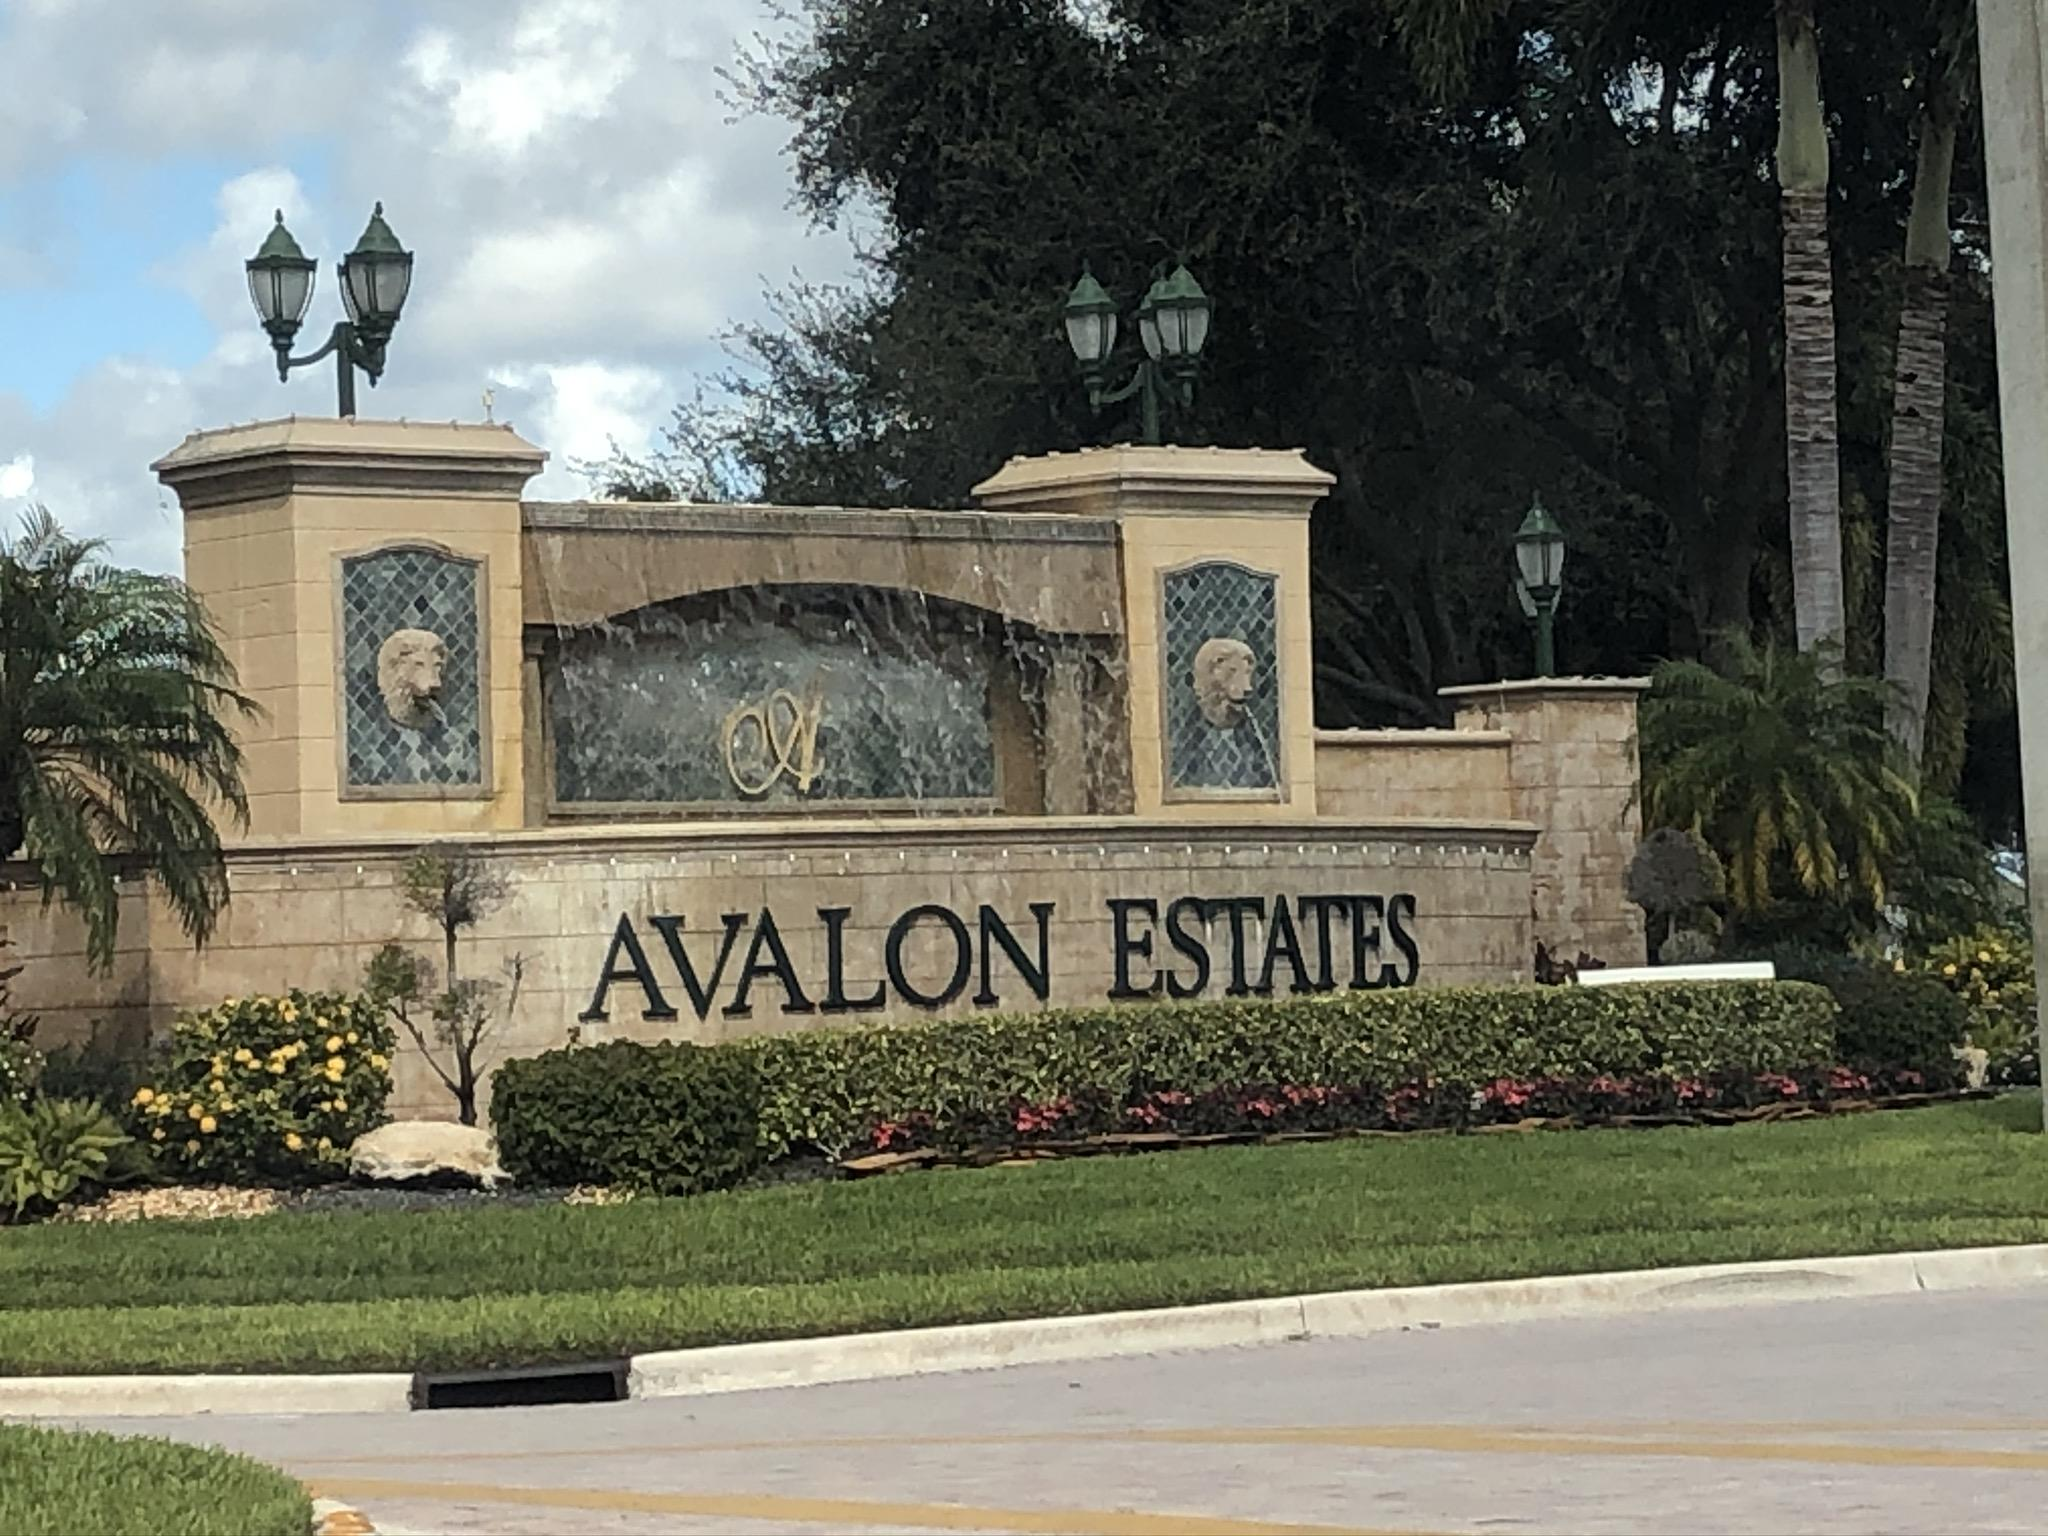 Super private oversize pie shaped lot overlooking stunning waterfront views. Avalon is like a resort. Remodeled clubhouse, billiards, craft rooms, unique pool, tennis, pickle ball, hot tub, sauna, and many more resort style amenities. 55+ community. Sold As Is condition. No survey/Disclosures. Proof of funds must accompany all offers. Addendum required after acceptance. EM must be Cert Funds. Rooms, lotsize/details/HOA info not grntd. Property in Auction, all auction terms apply. Buyer responsible for past due HOA fees if any.